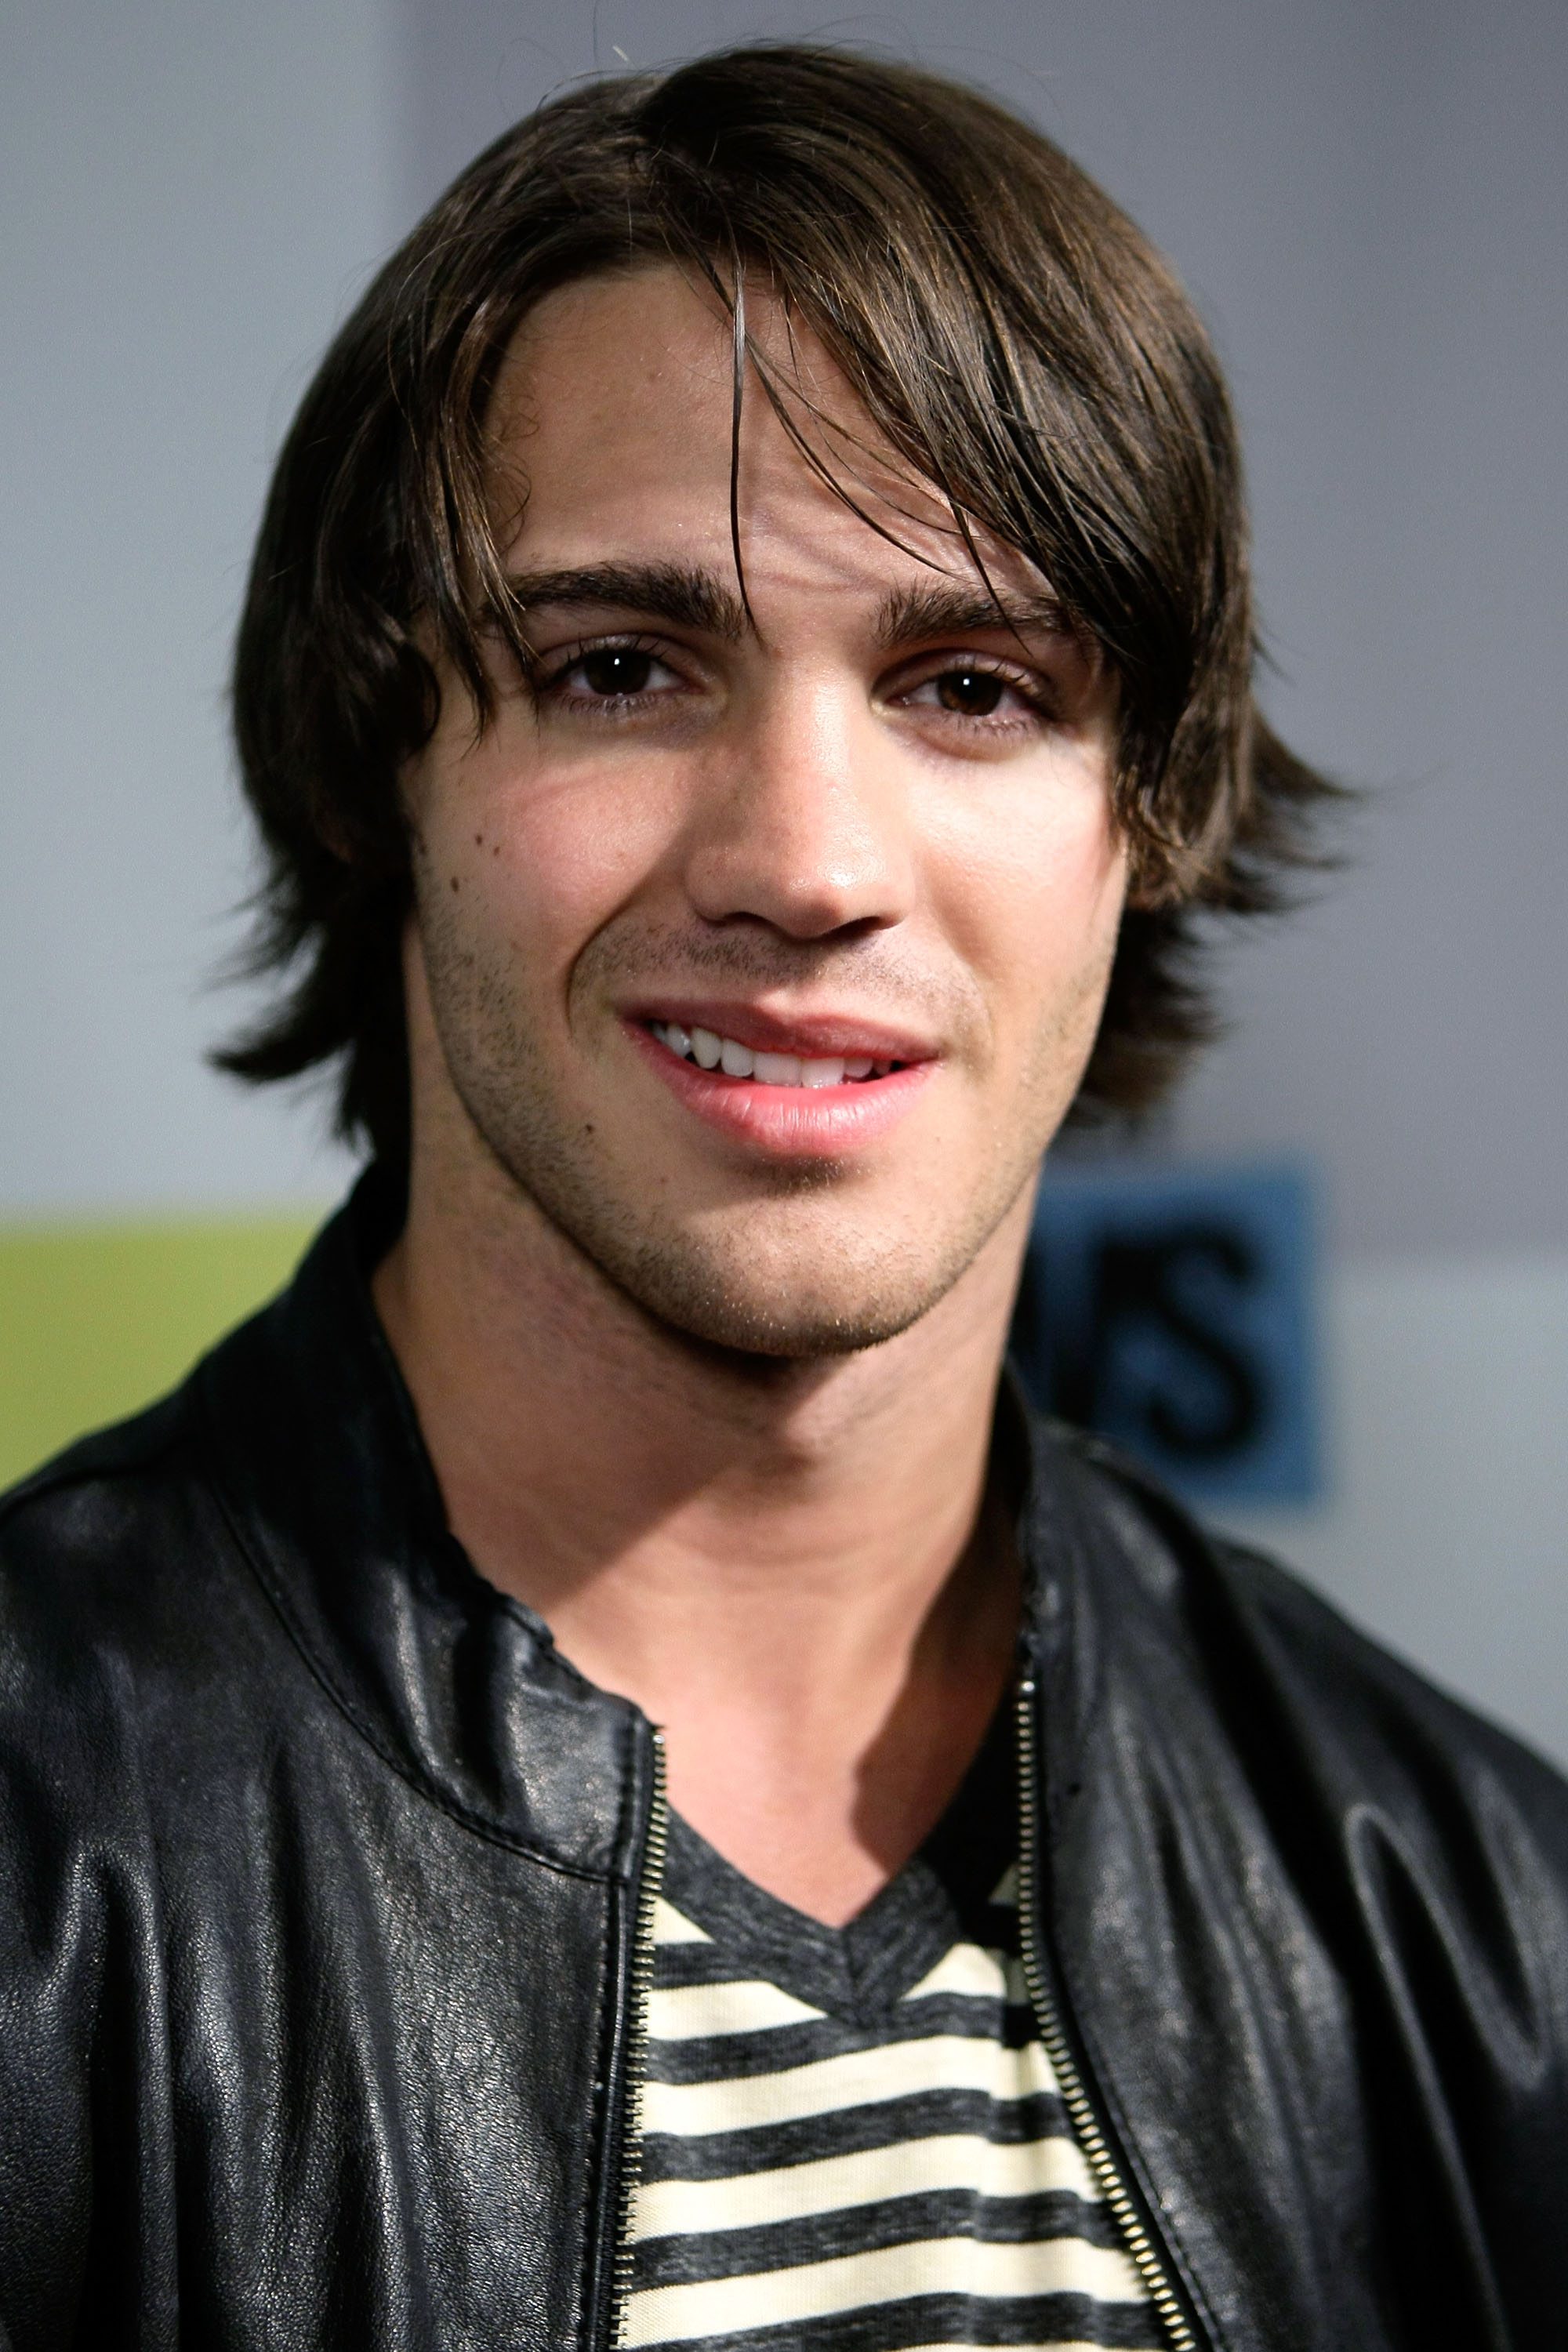 Steven R McQueen attends day 3 of Comic-Con in San Diego, California on July 24, 2010 | Photo: Getty Images